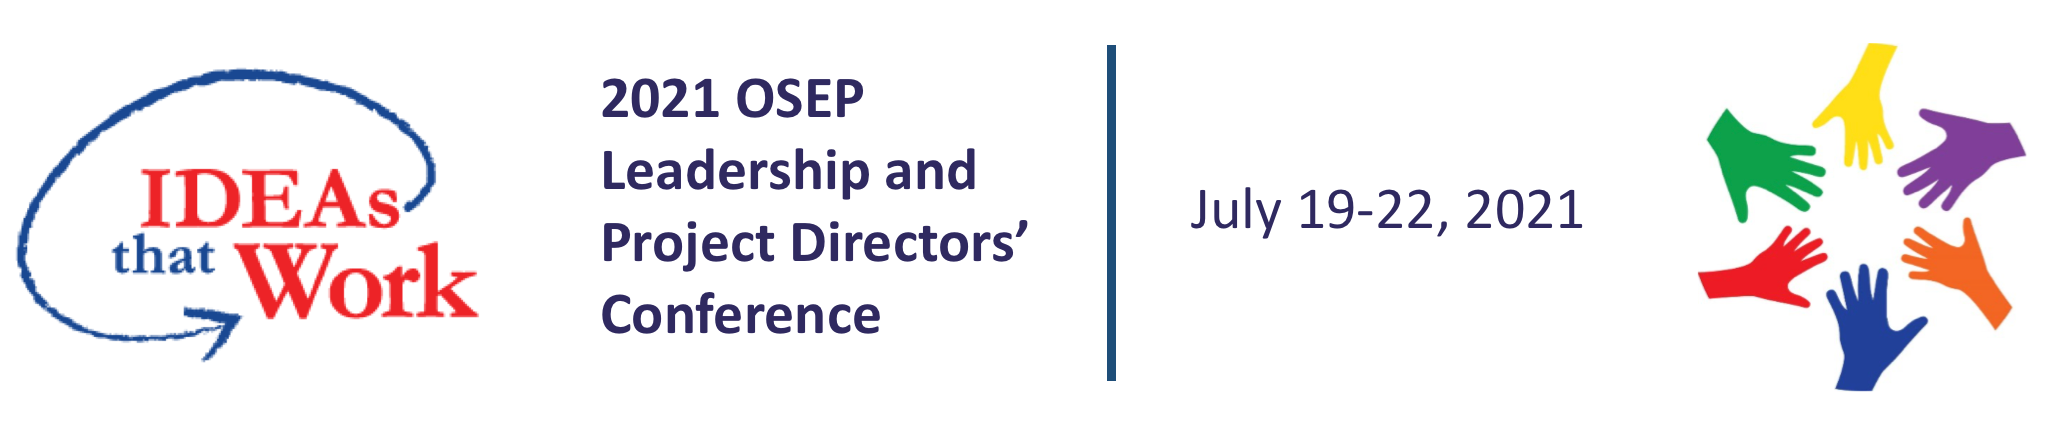 2021 OSEP Leadership and Project Director's Conference, July 19-22, 2021